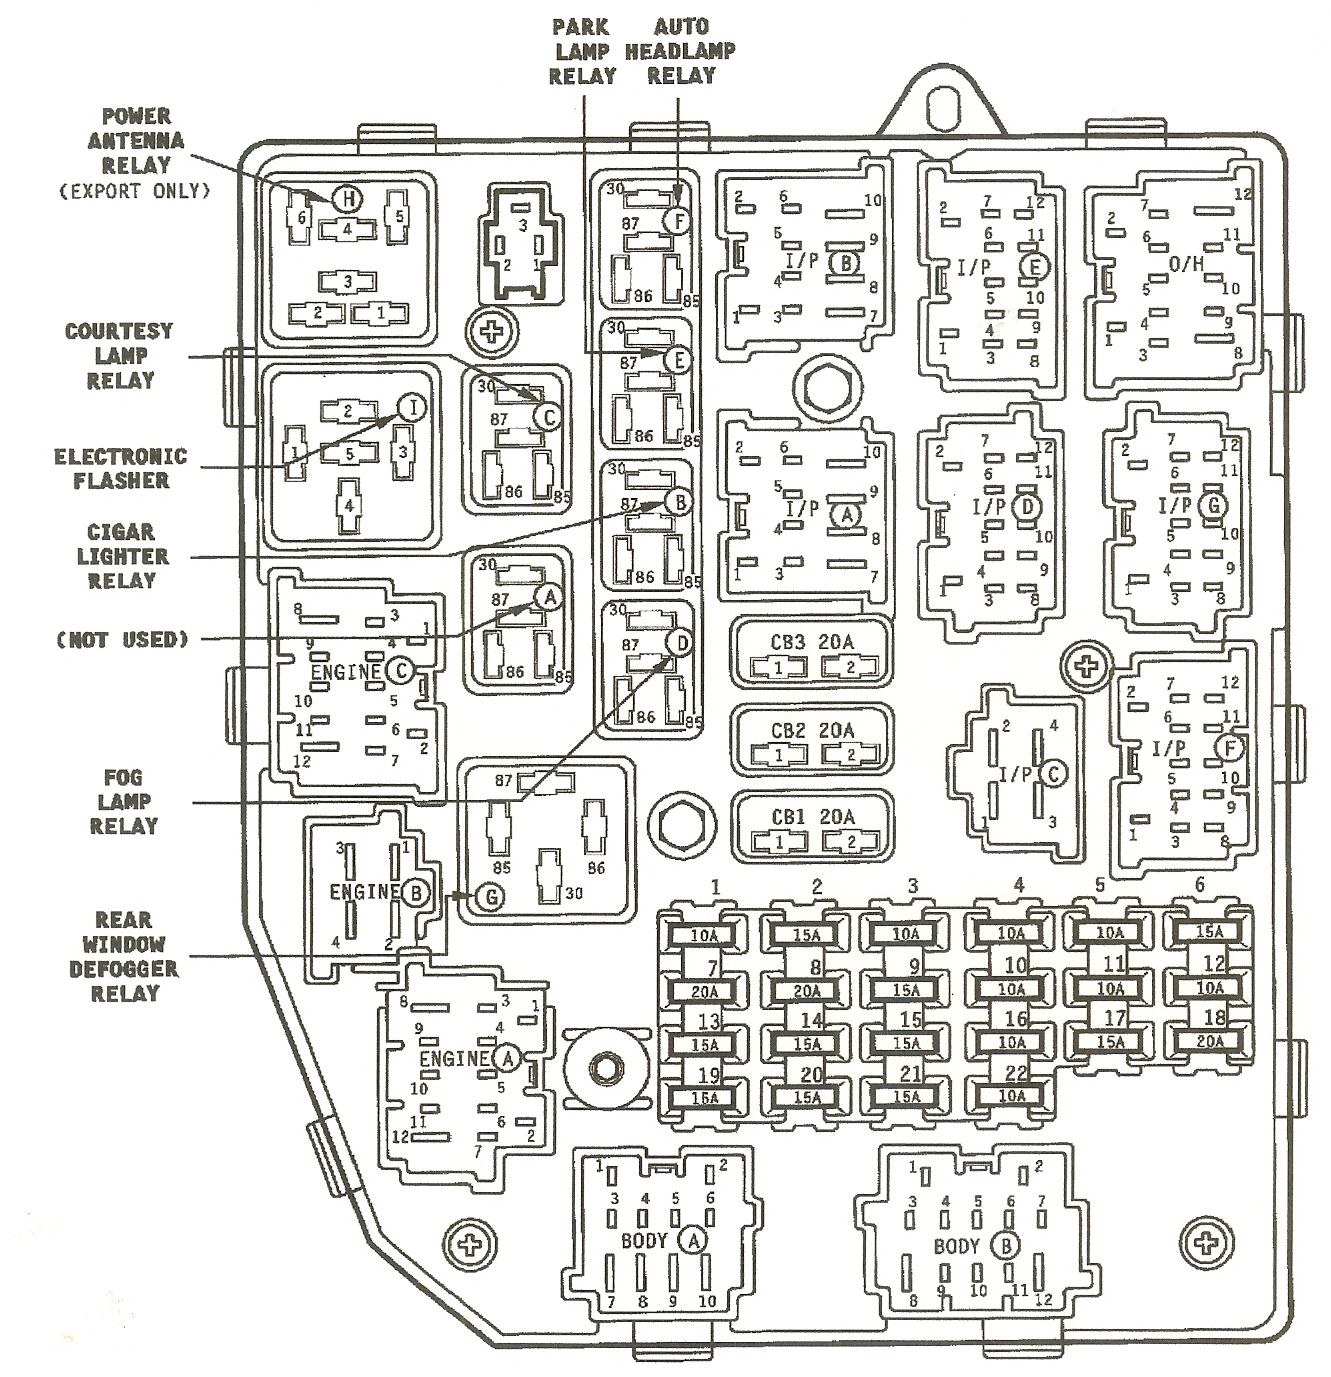 small resolution of fuse box 96 jeep grand cherokee just wiring diagram 1996 jeep grand cherokee laredo fuse box 1996 jeep laredo fuse box